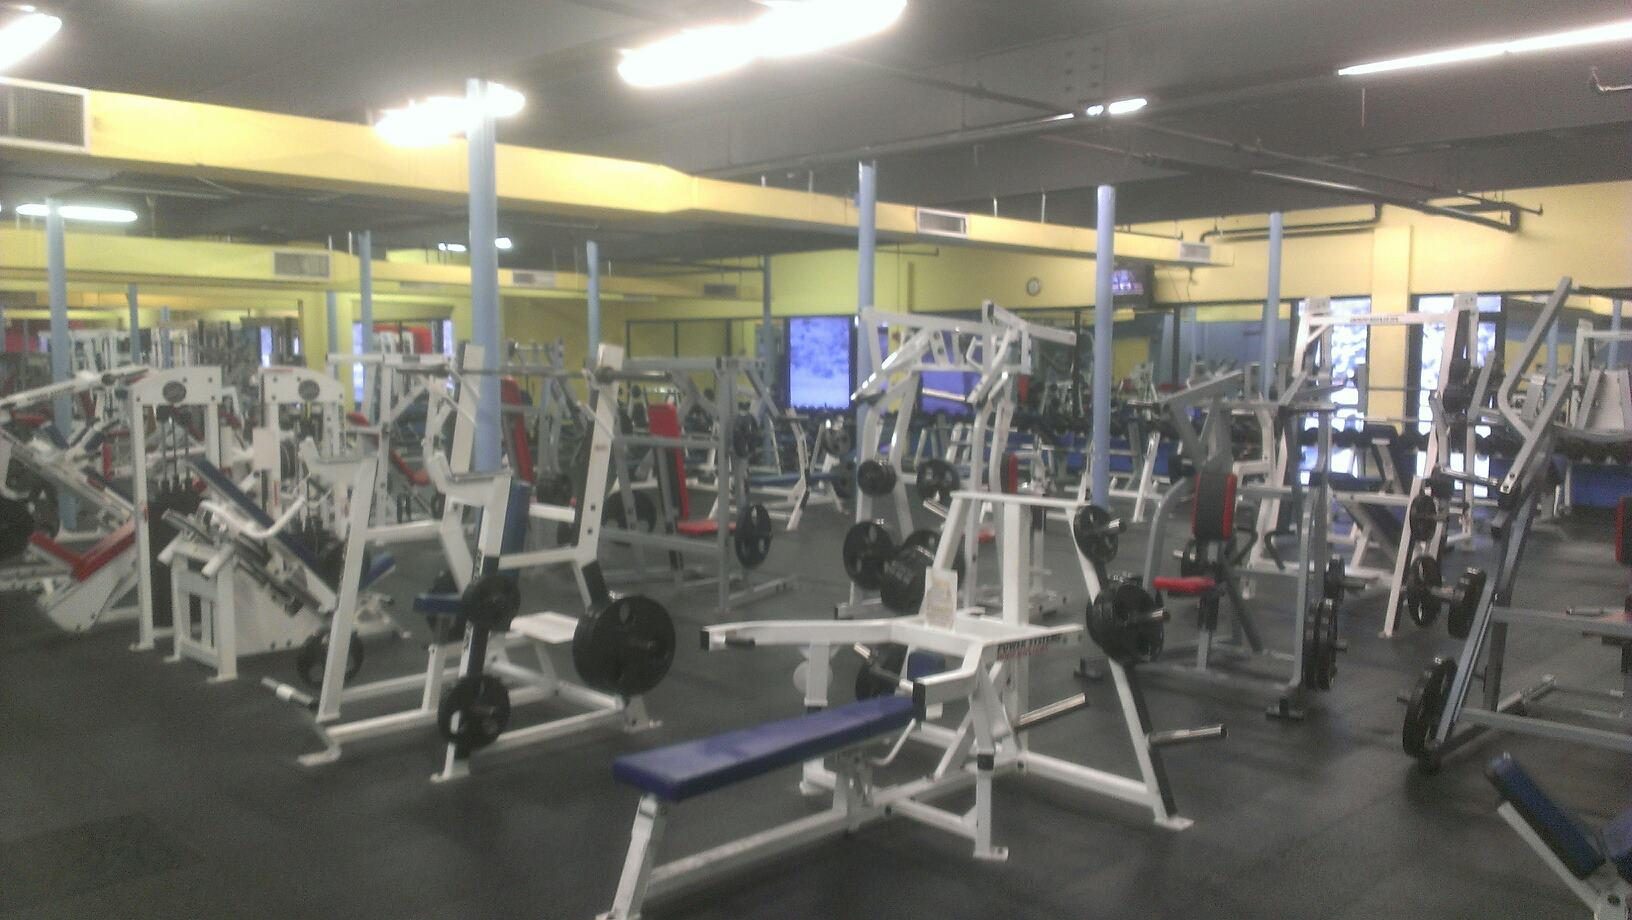 Salem fitness center coupons near me in